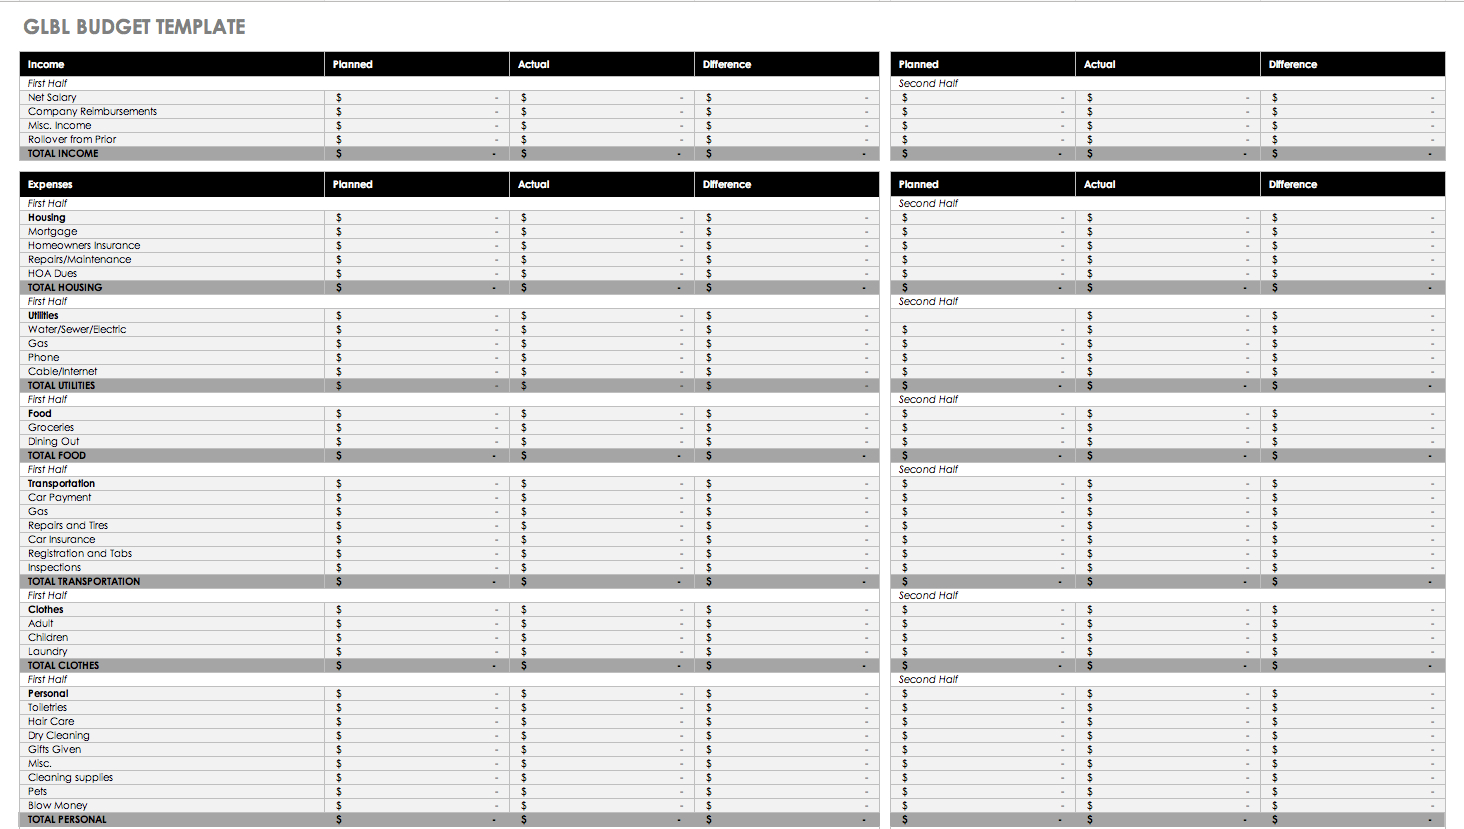 Department Budget Spreadsheet Within Free Budget Templates In Excel For Any Use